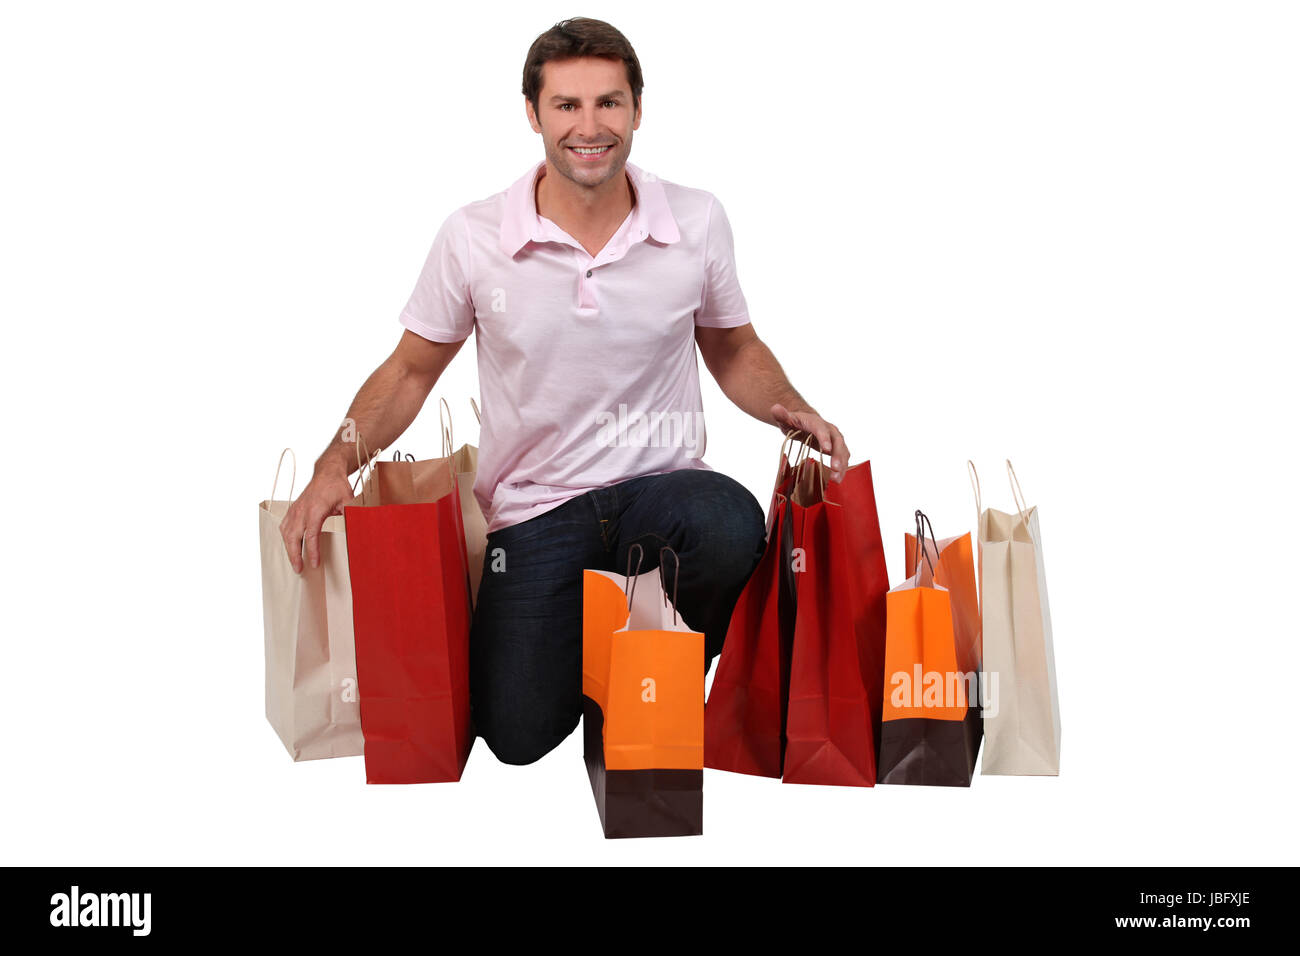 Man with shopping bags - Stock Image